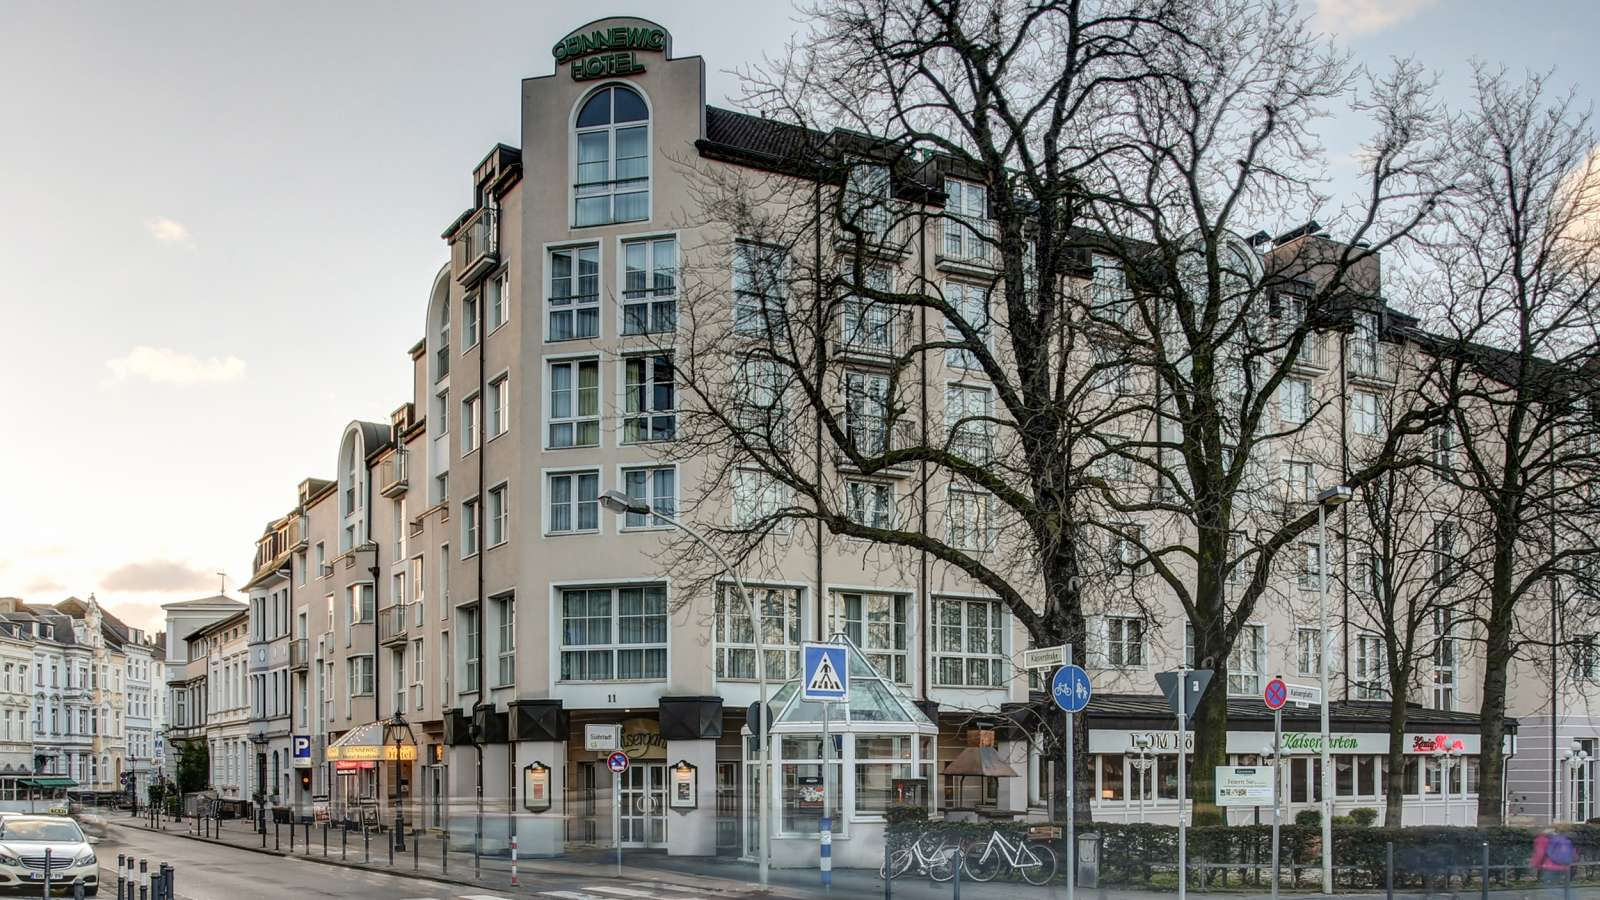 The popular 4-star Hotel Hotel Residence in Bonn